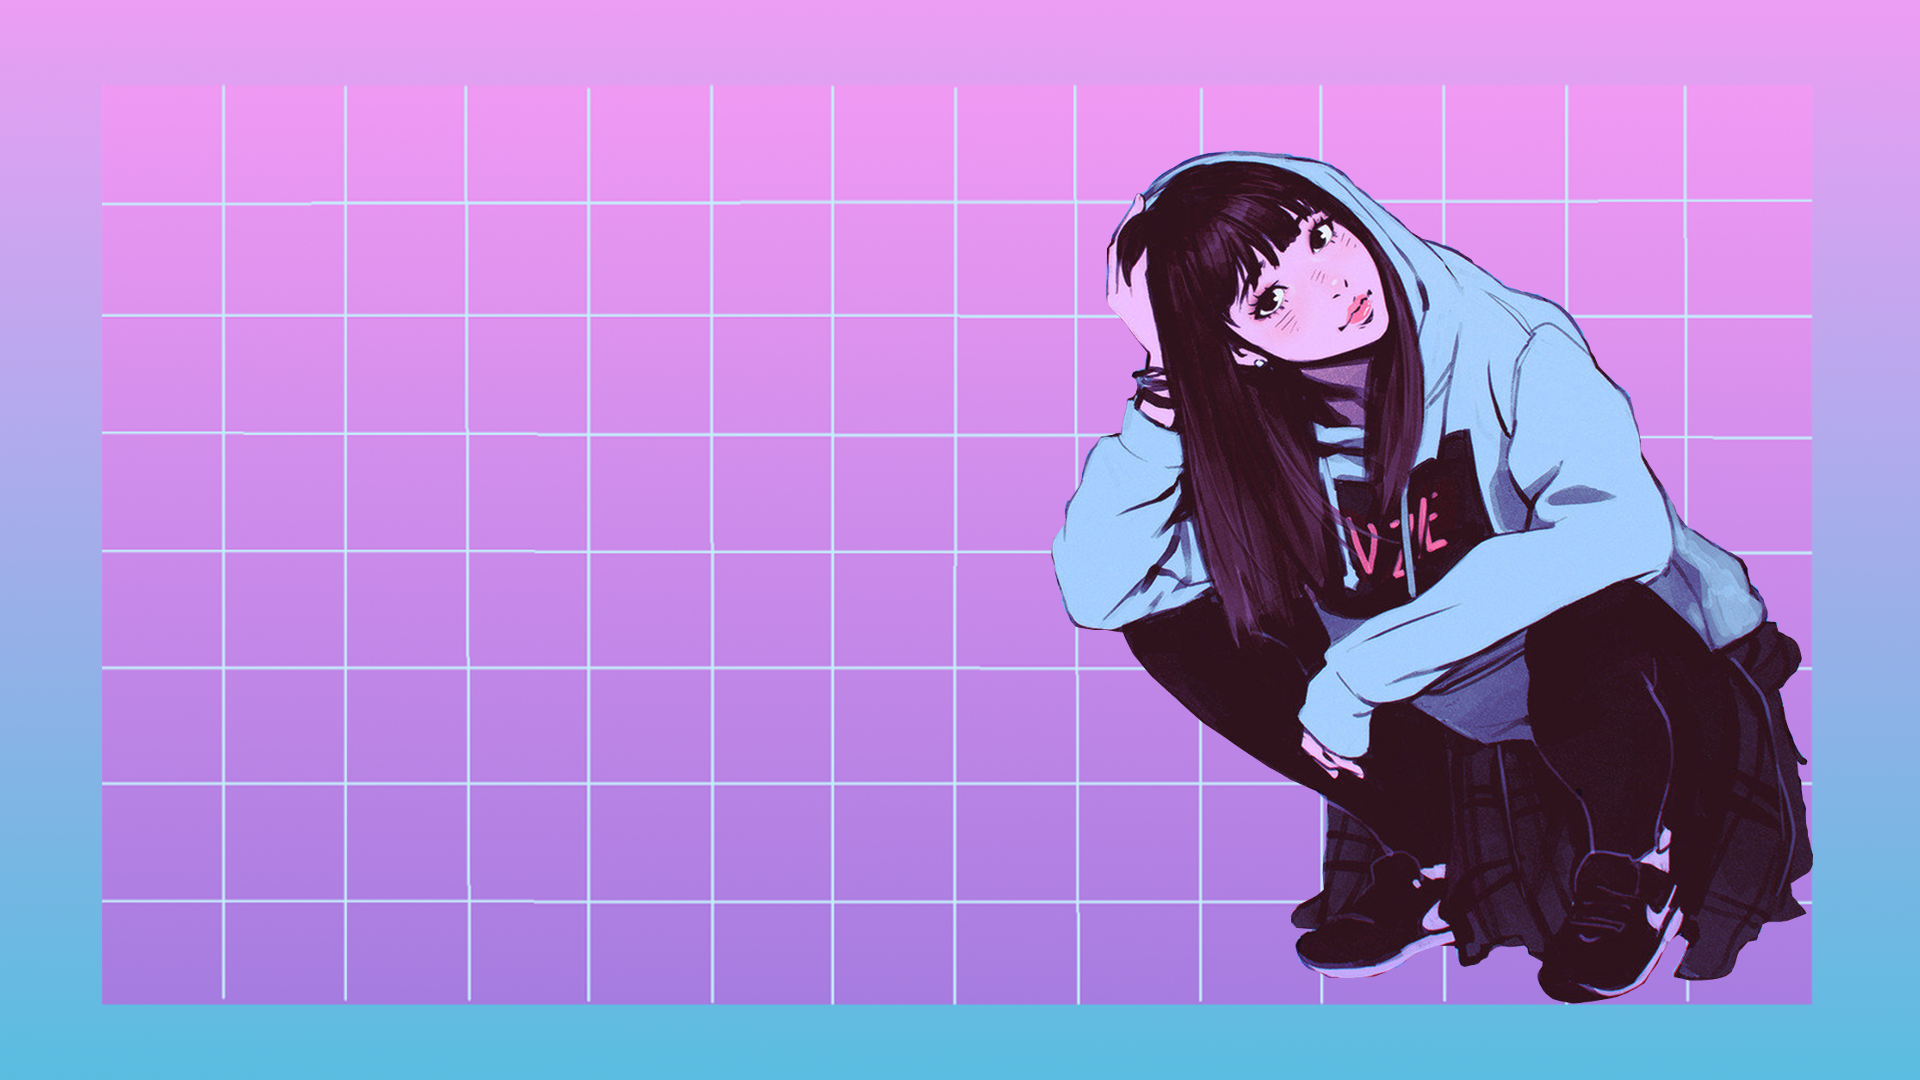 aesthetic hd laptop anime wallpapers